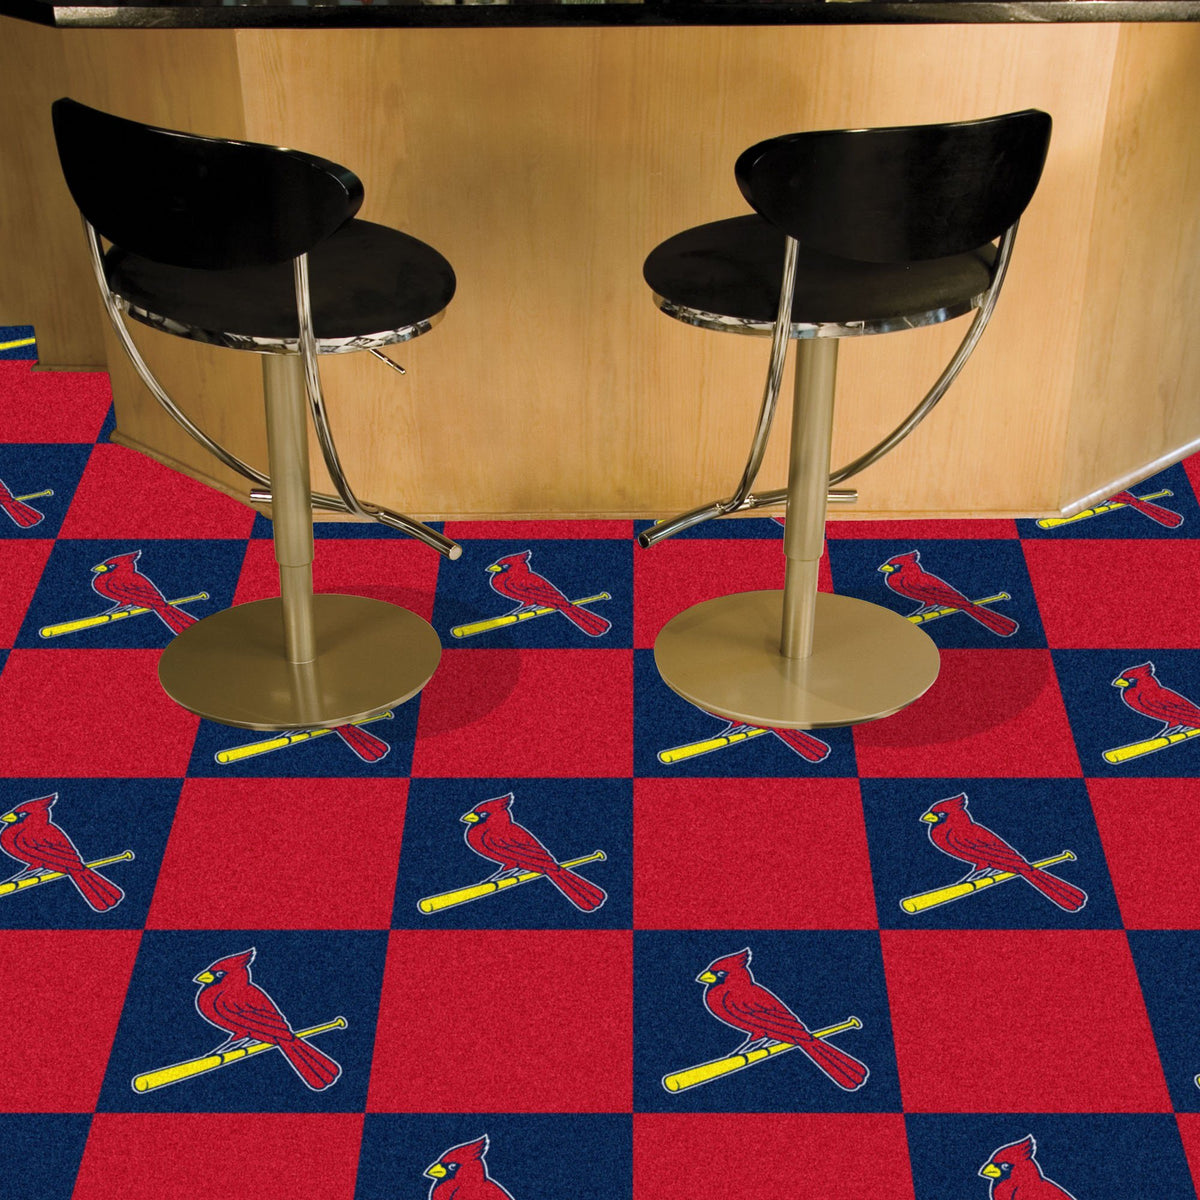 MLB - Team Carpet Tiles MLB Mats, Carpet Tile Flooring, Team Carpet Tiles, MLB, Home Fan Mats St. Louis Cardinals 2